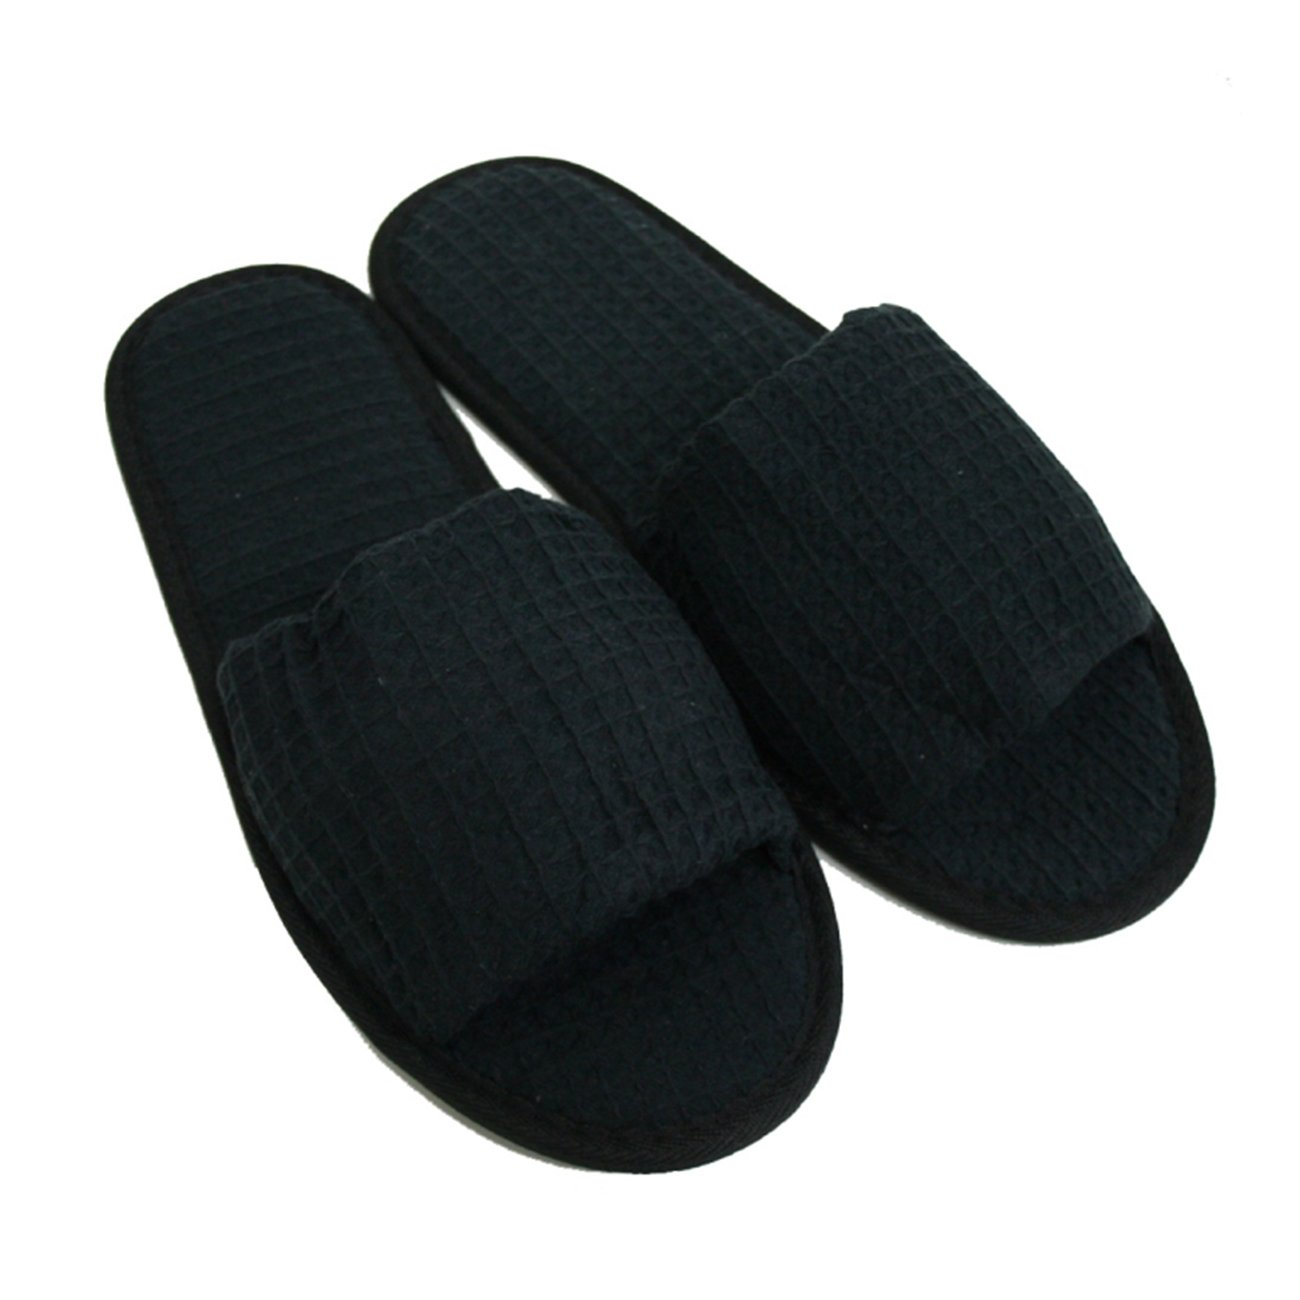 Waffle Open Toe Adult Slippers Cloth Spa Hotel Unisex Slippers for Women and Men Black